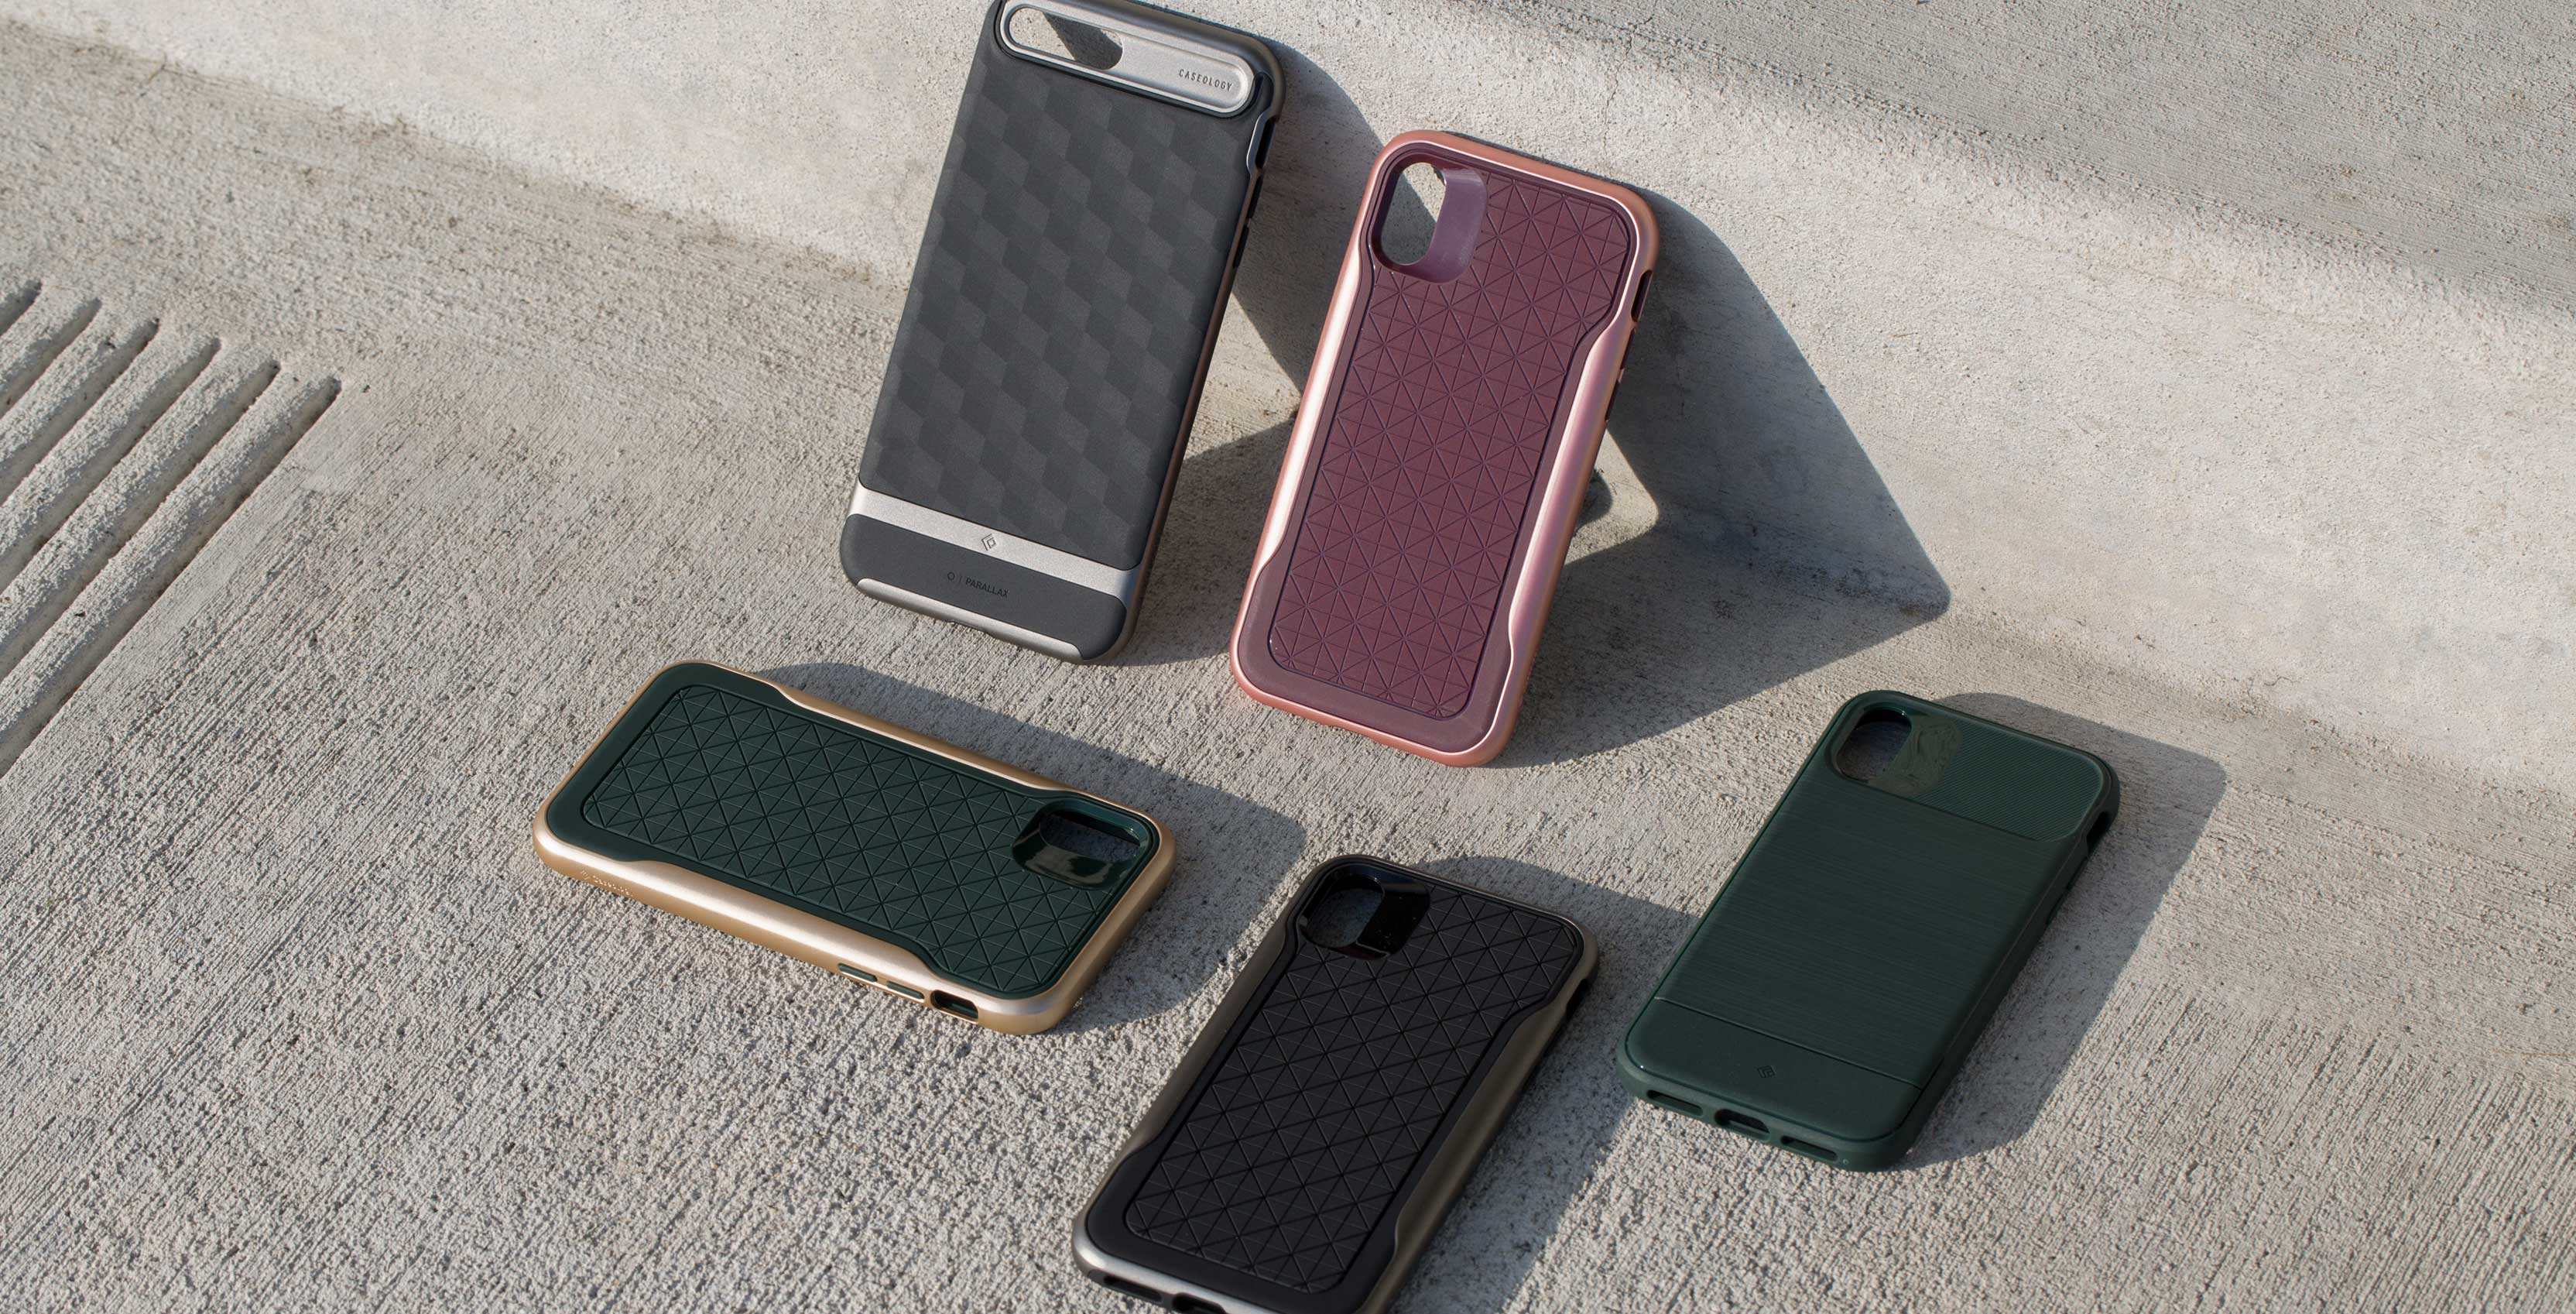 Caseology iPhone cases